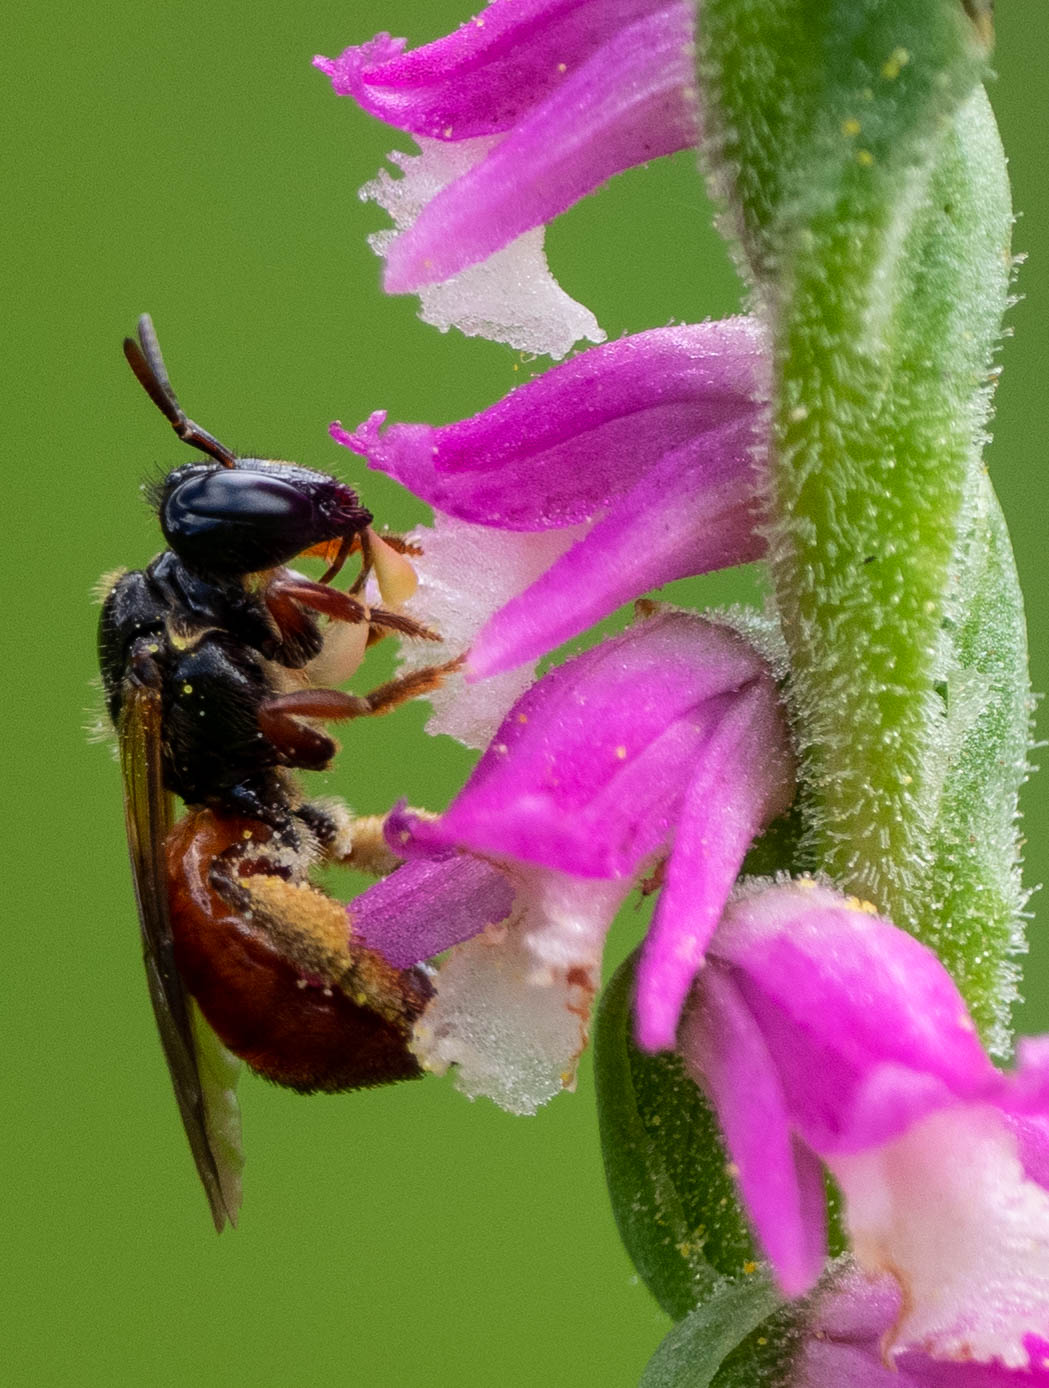 bee with orchid pollinia attached